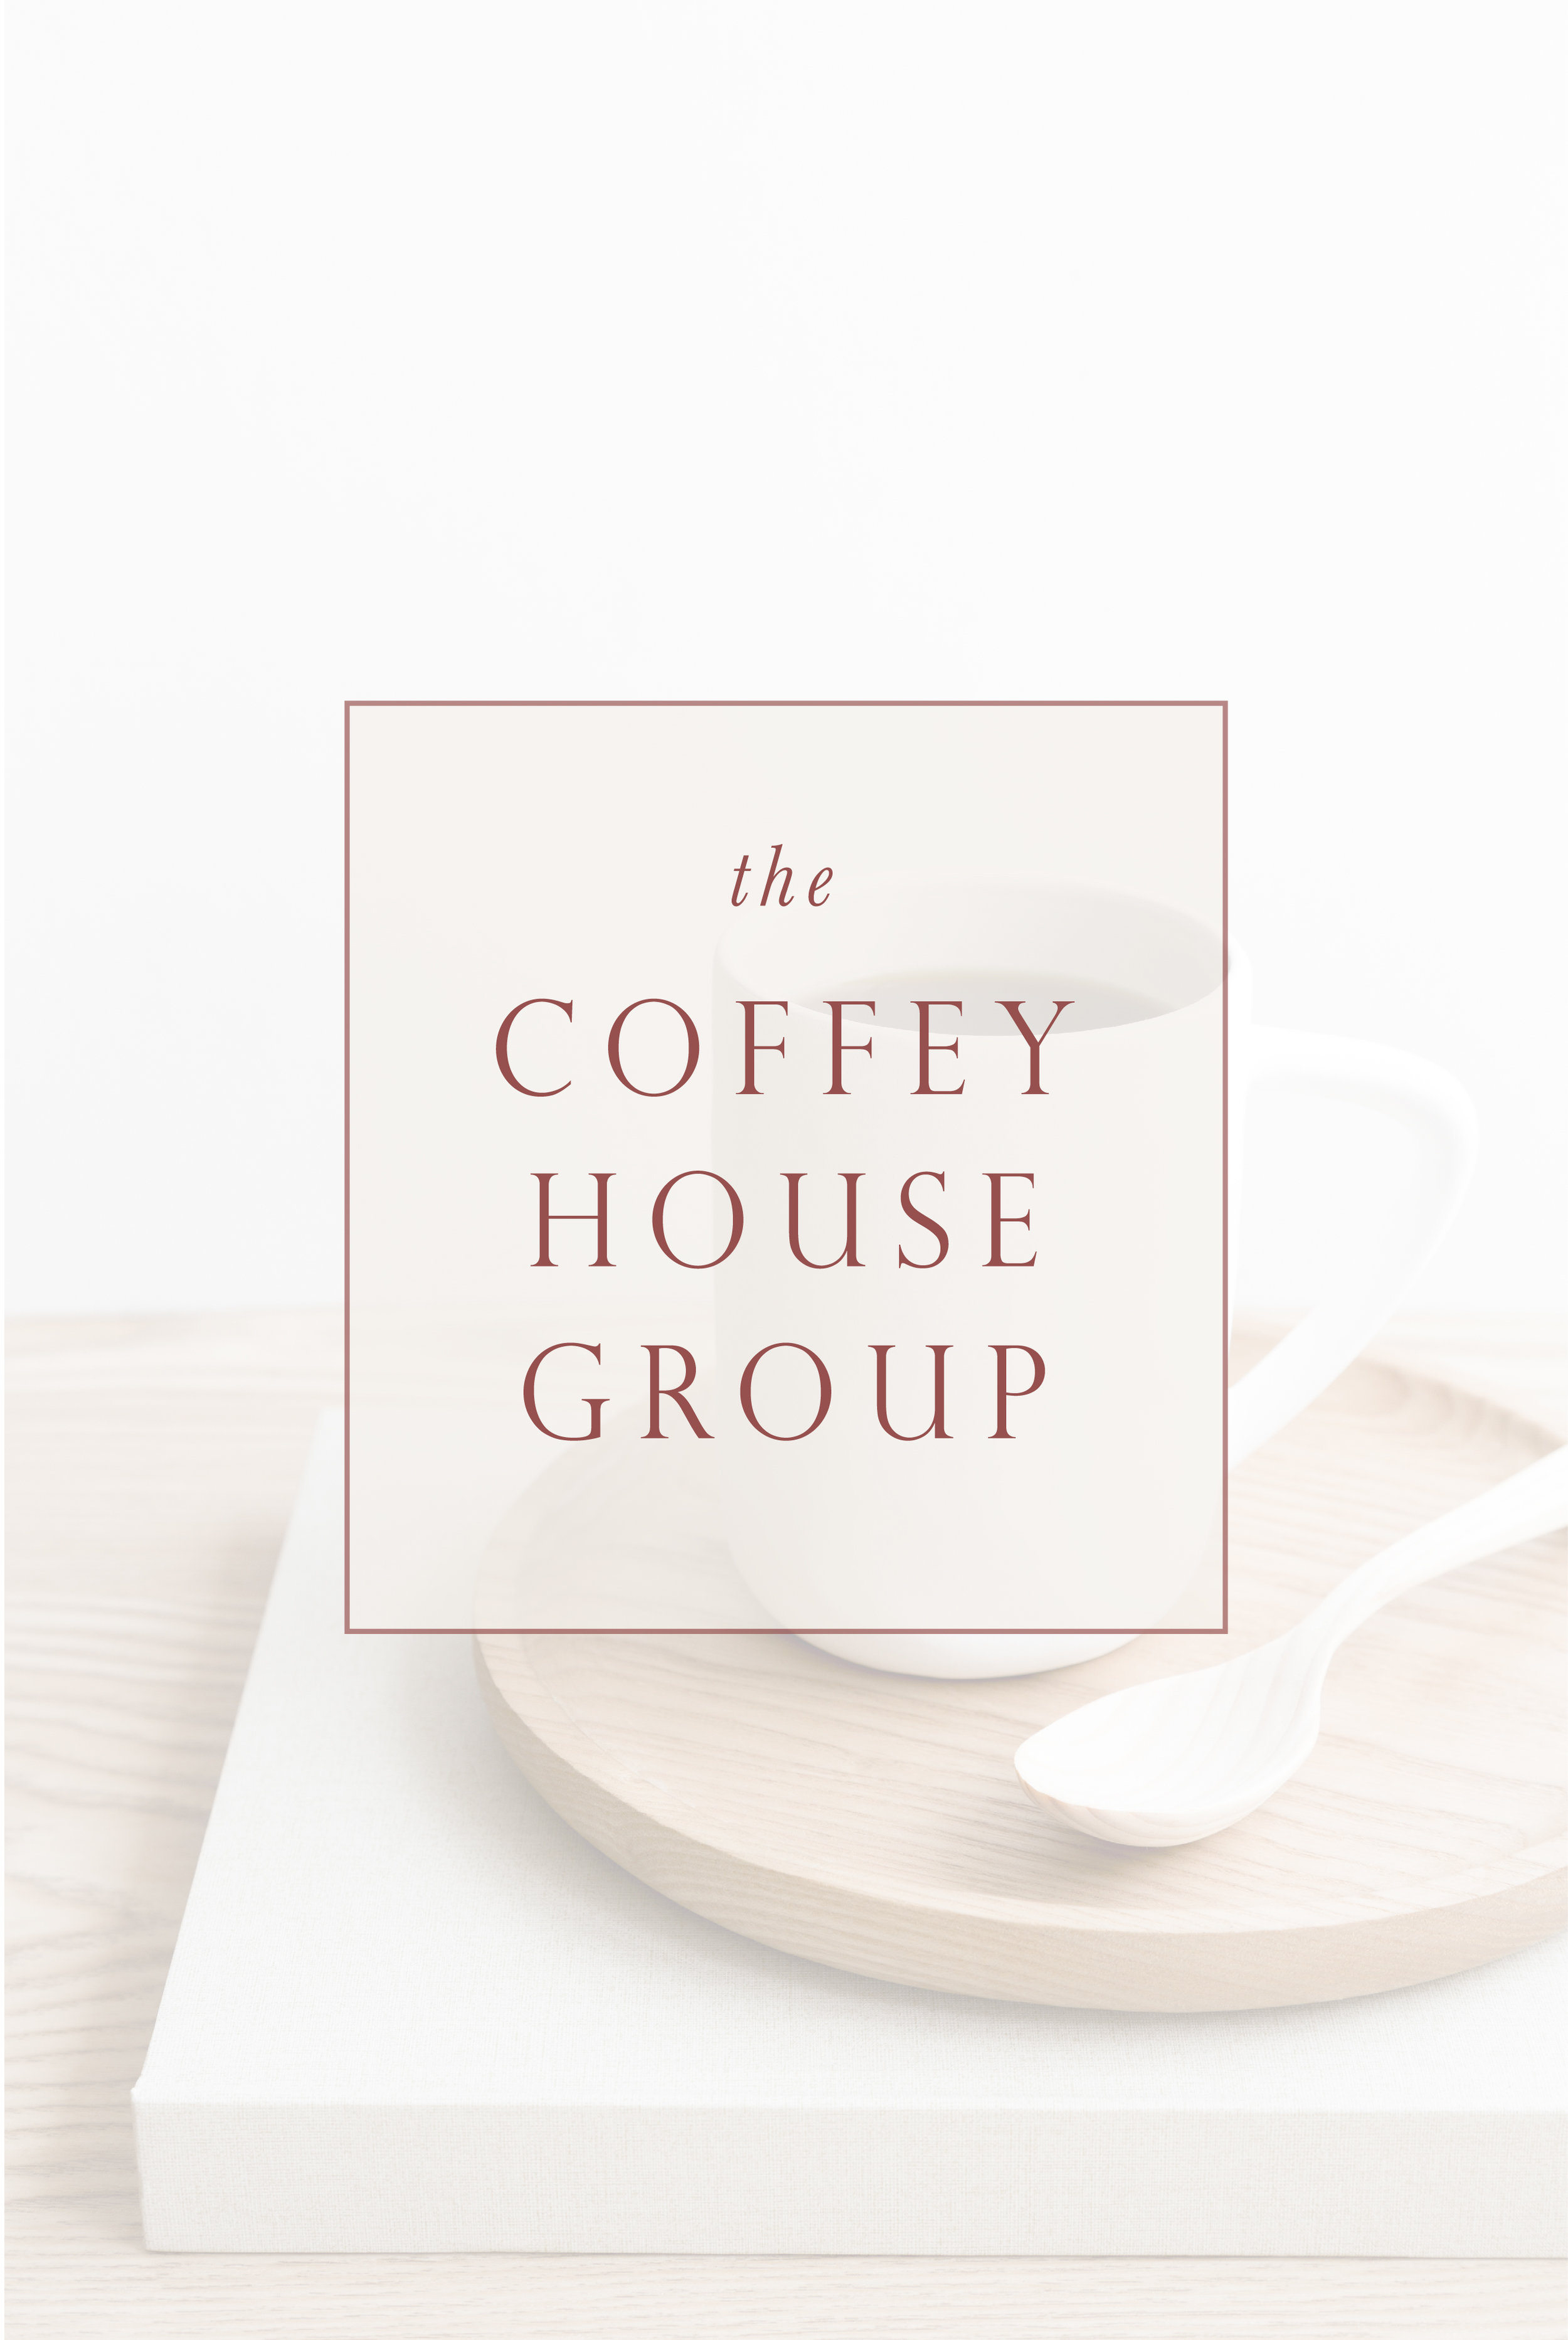 - THE COFFEY HOUSE GROUPvisual branding, print collateral